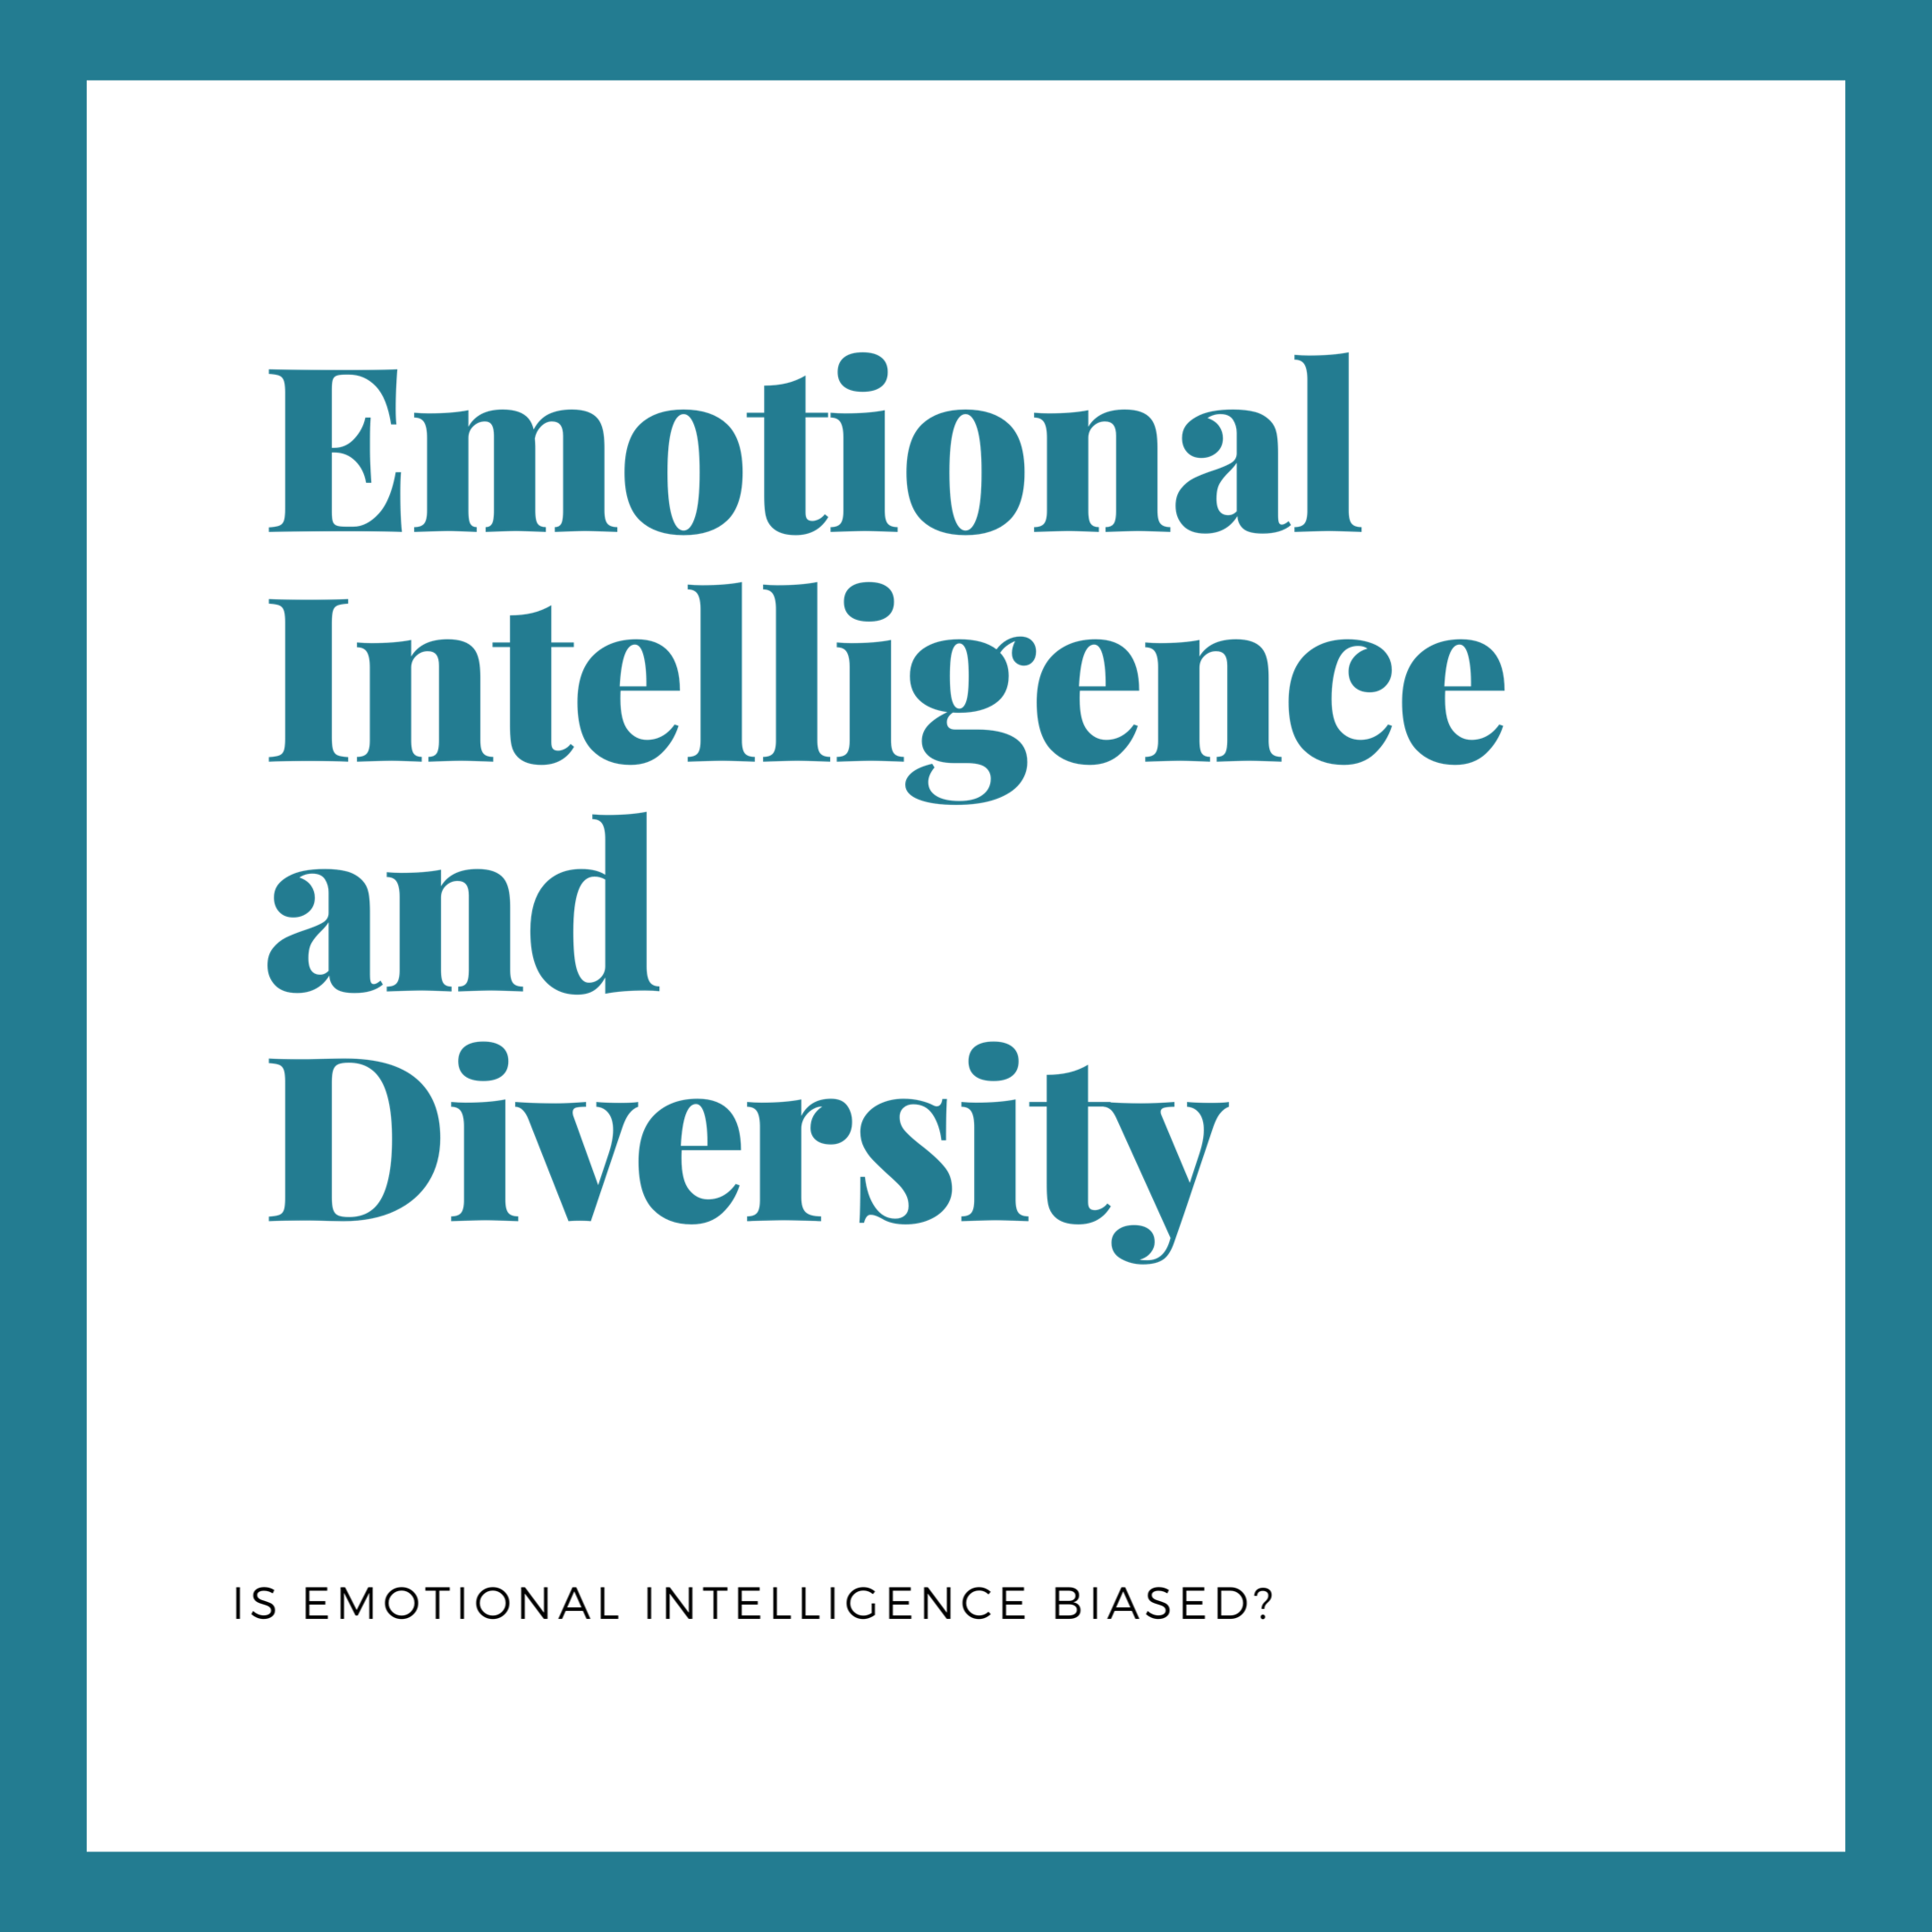 Is emotional intelligence biased against people of color?